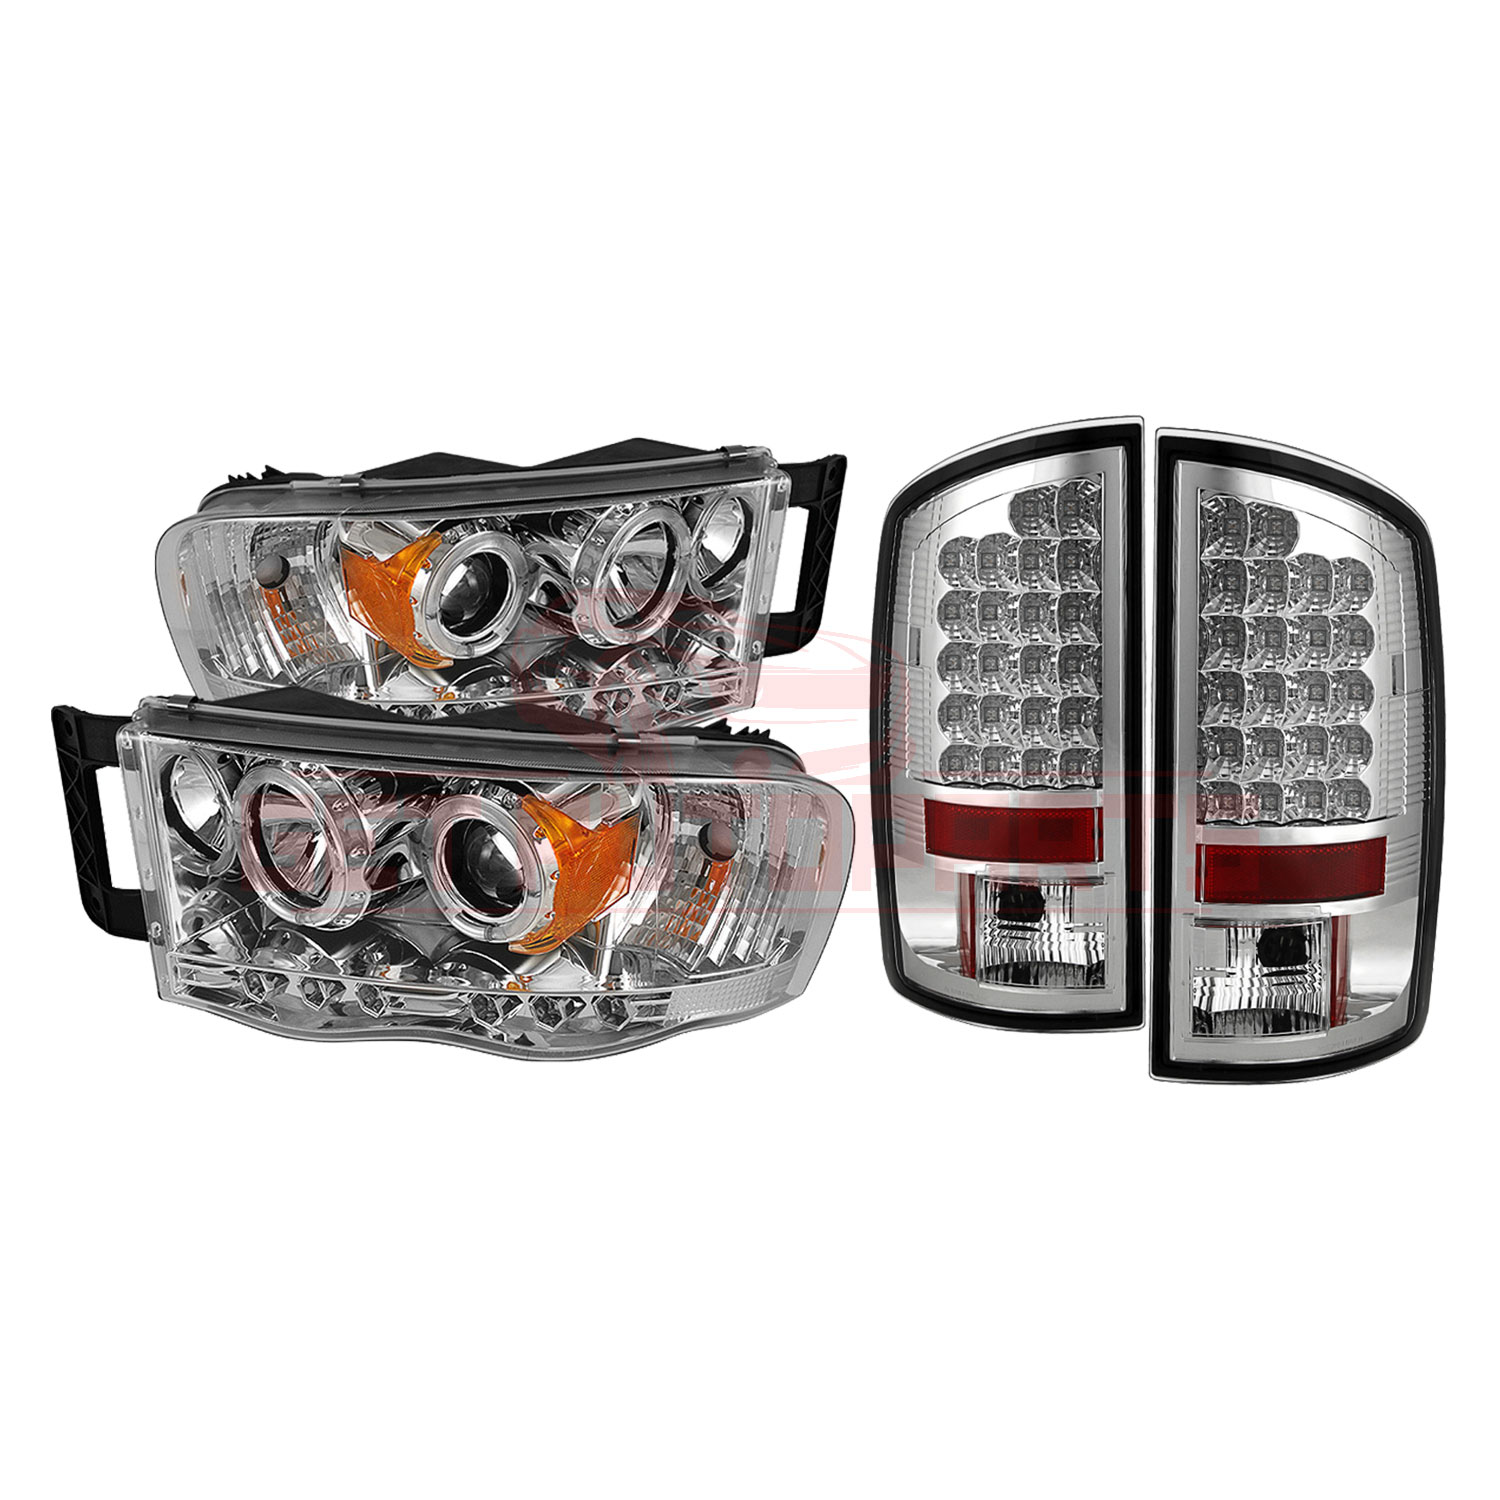 Spyder Halo LED Projector Headlights & LED Tail Lights - for Dodge Ram 02-05 part in Headlight & Tail Light Covers category